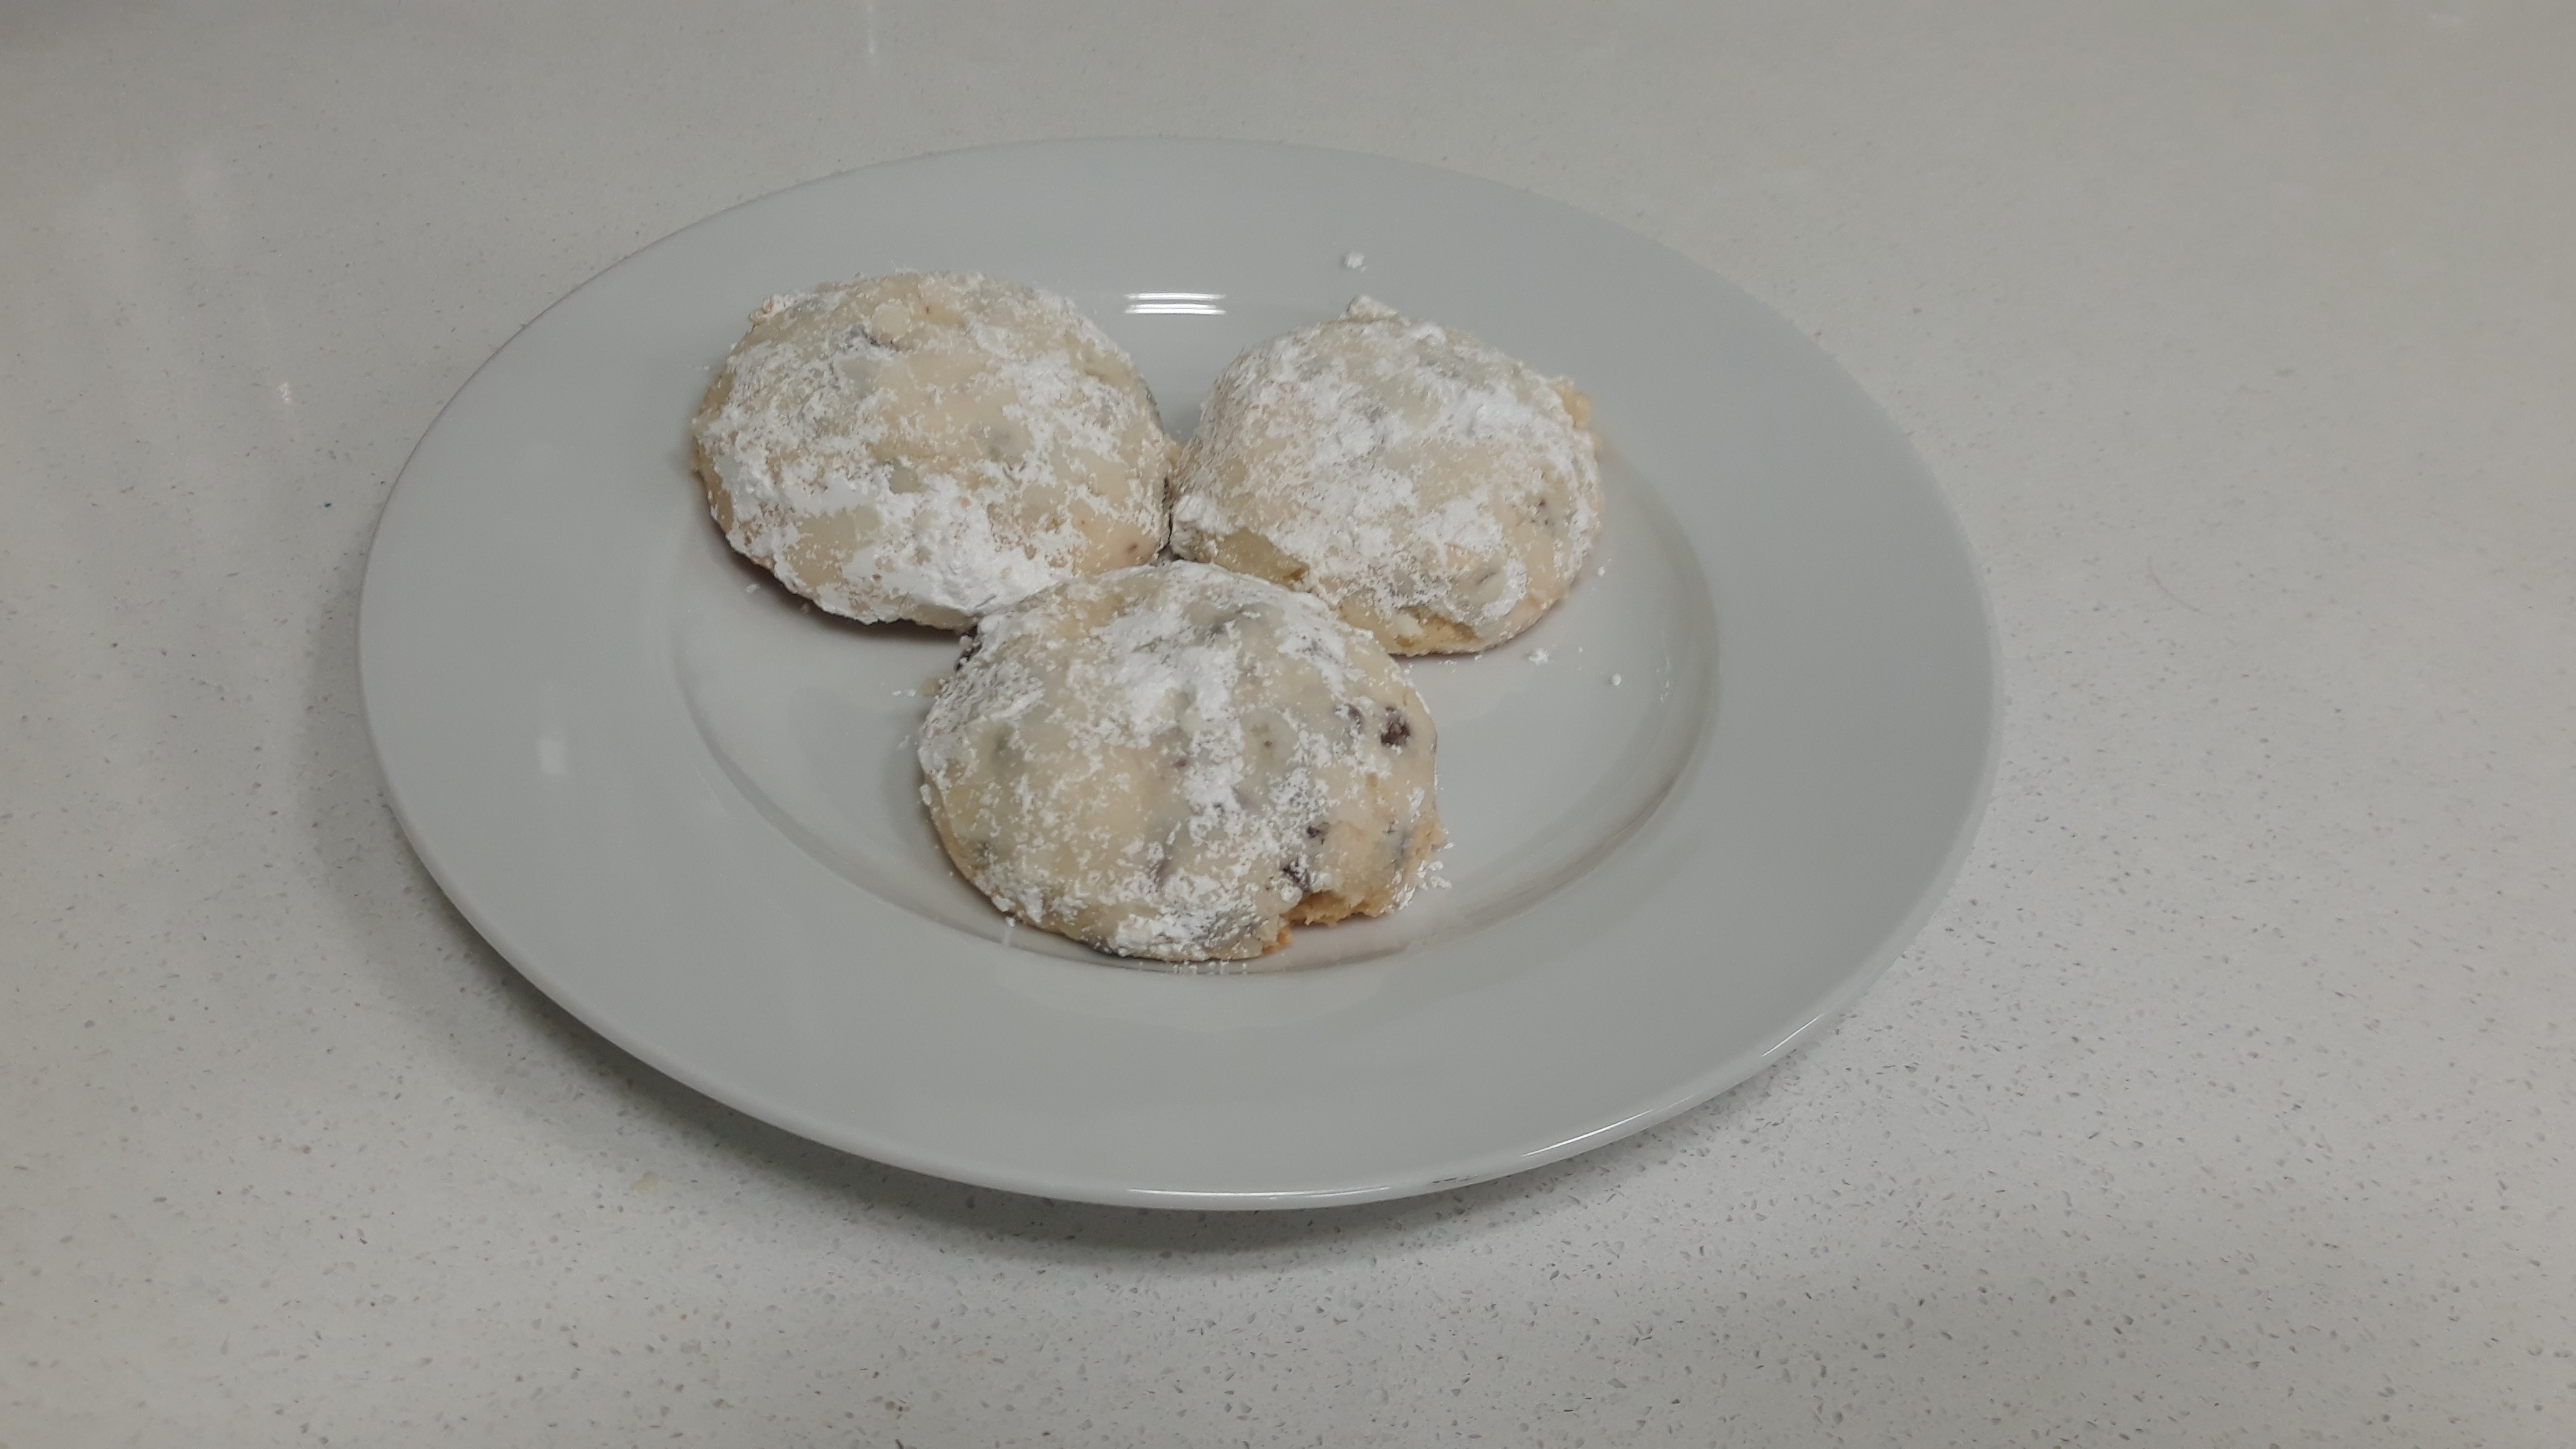 Three snowball cookies on a white plate